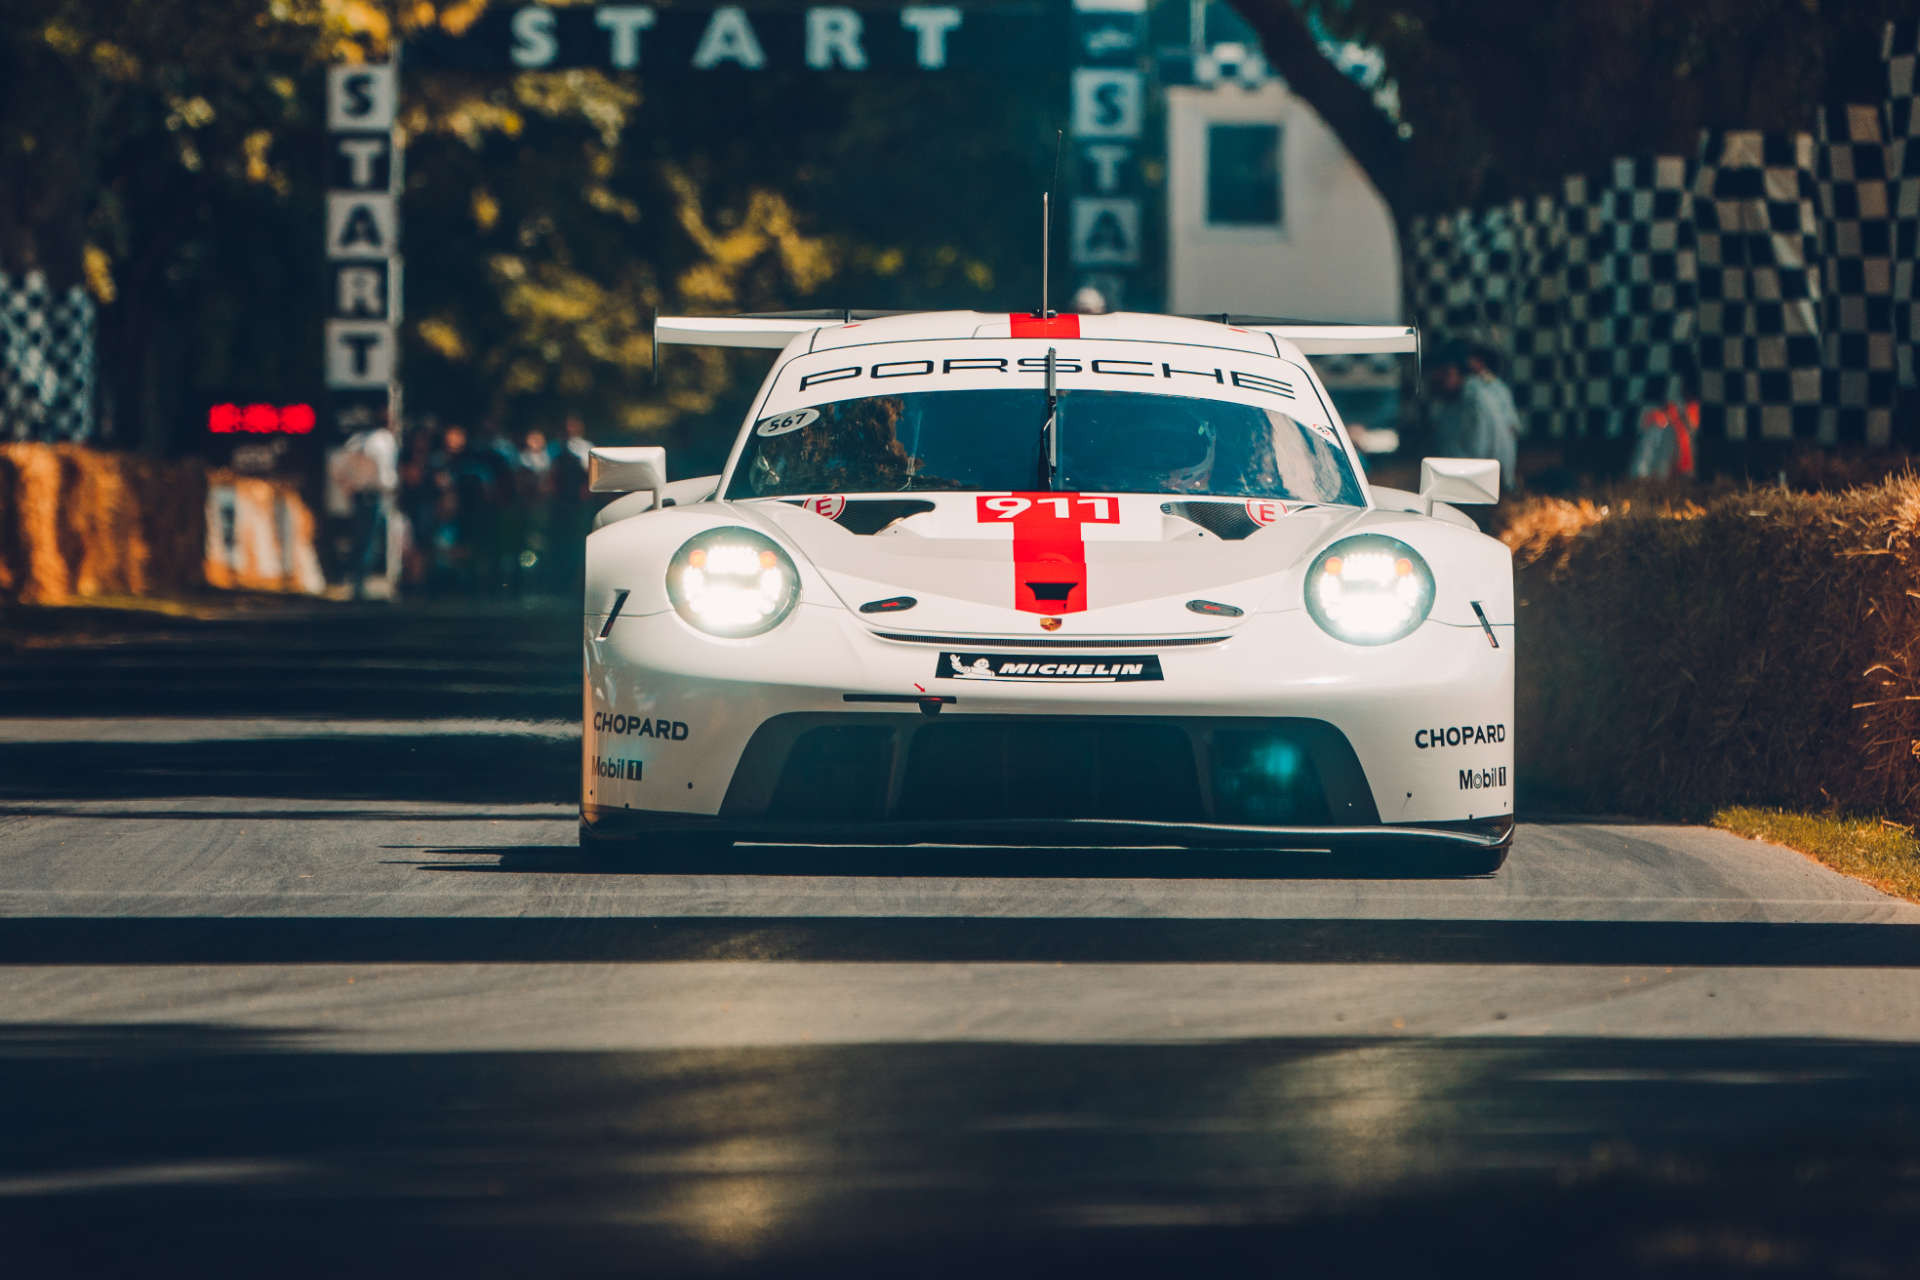 Der neue Porsche 911 RSR beim Goodwood Festival of Speed.